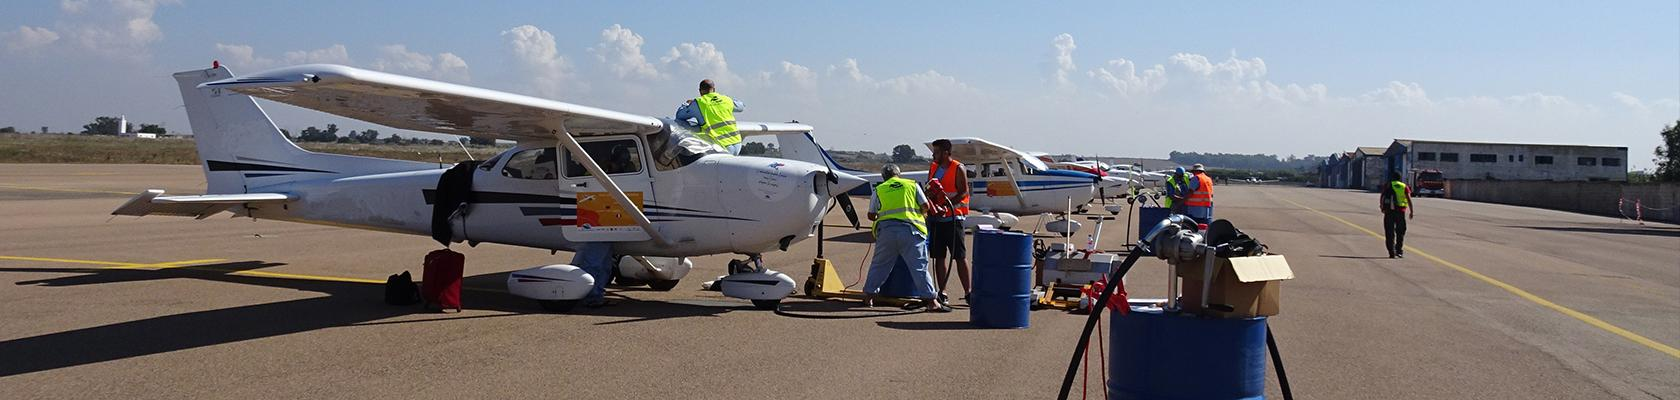 Fueling airplanes